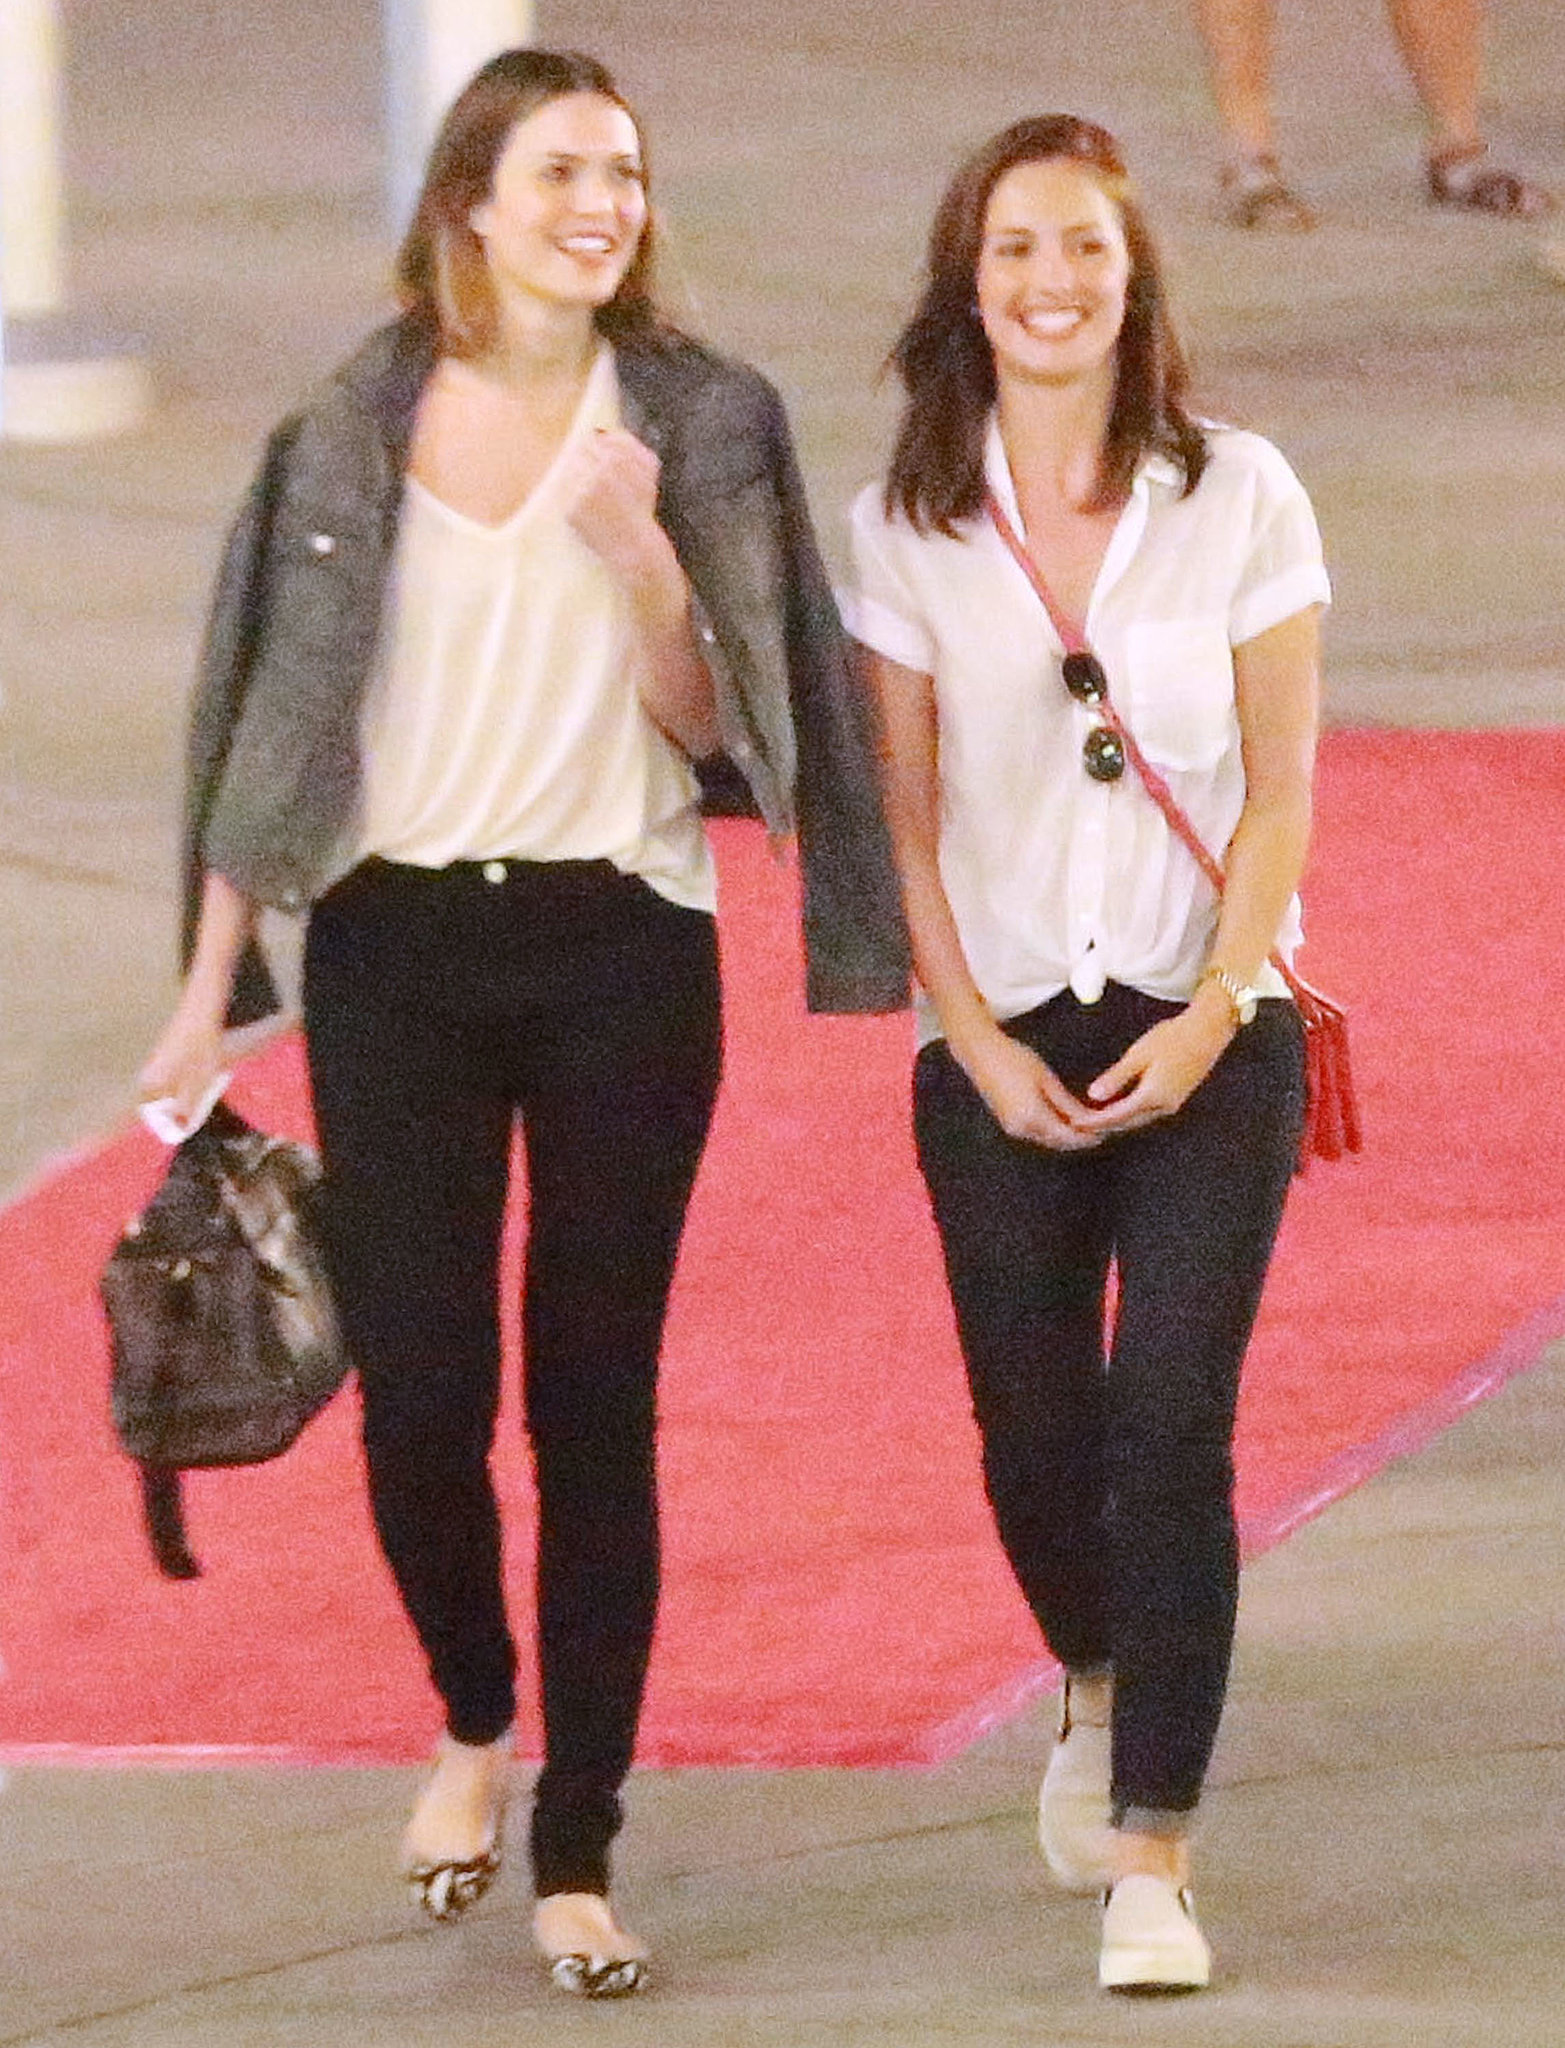 Mandy Moore and Minka Kelly checked out a movie in LA on Monday night.